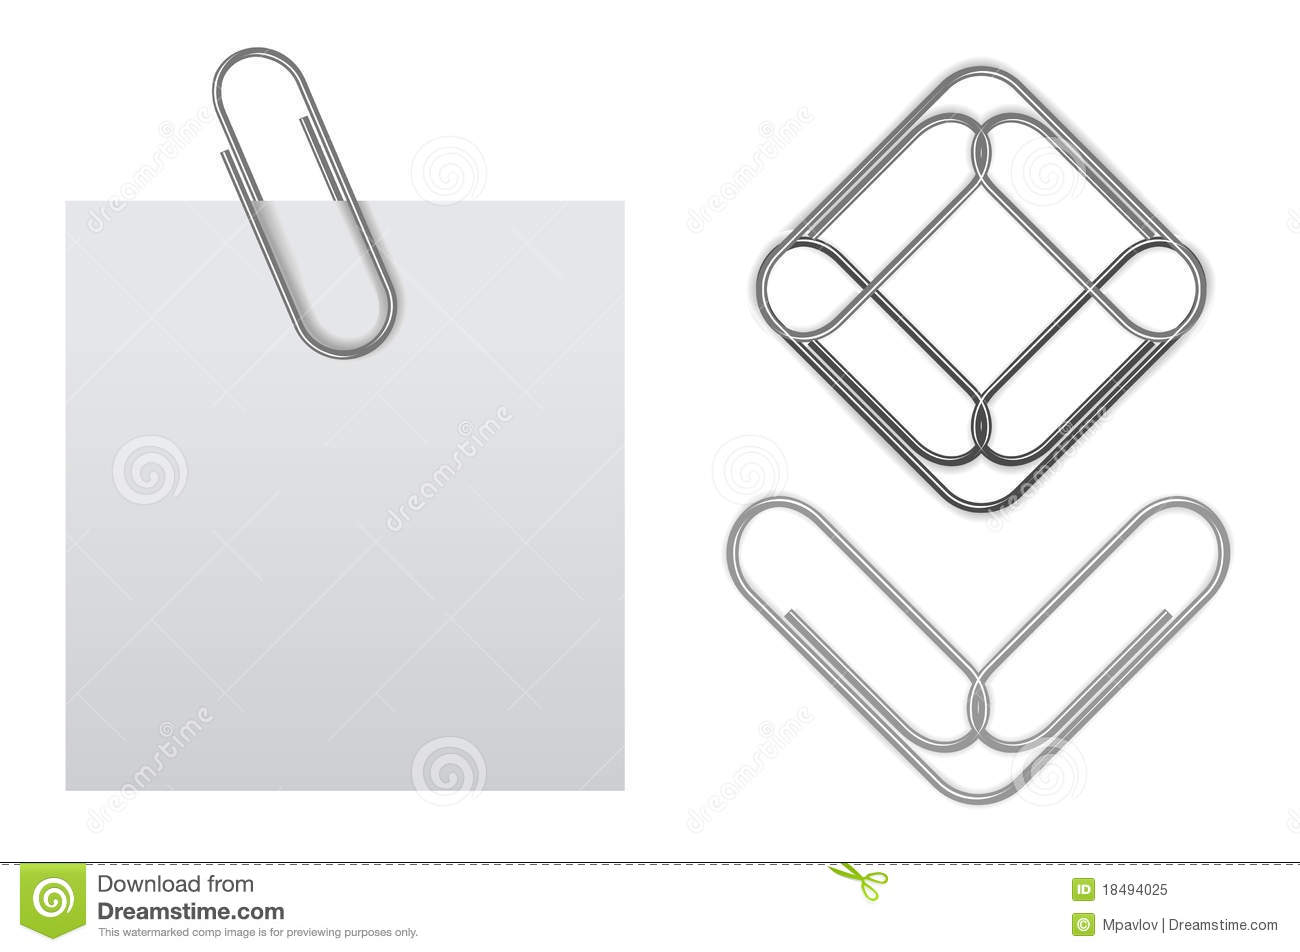 vector sticky note with paper clip stock vector - illustration of